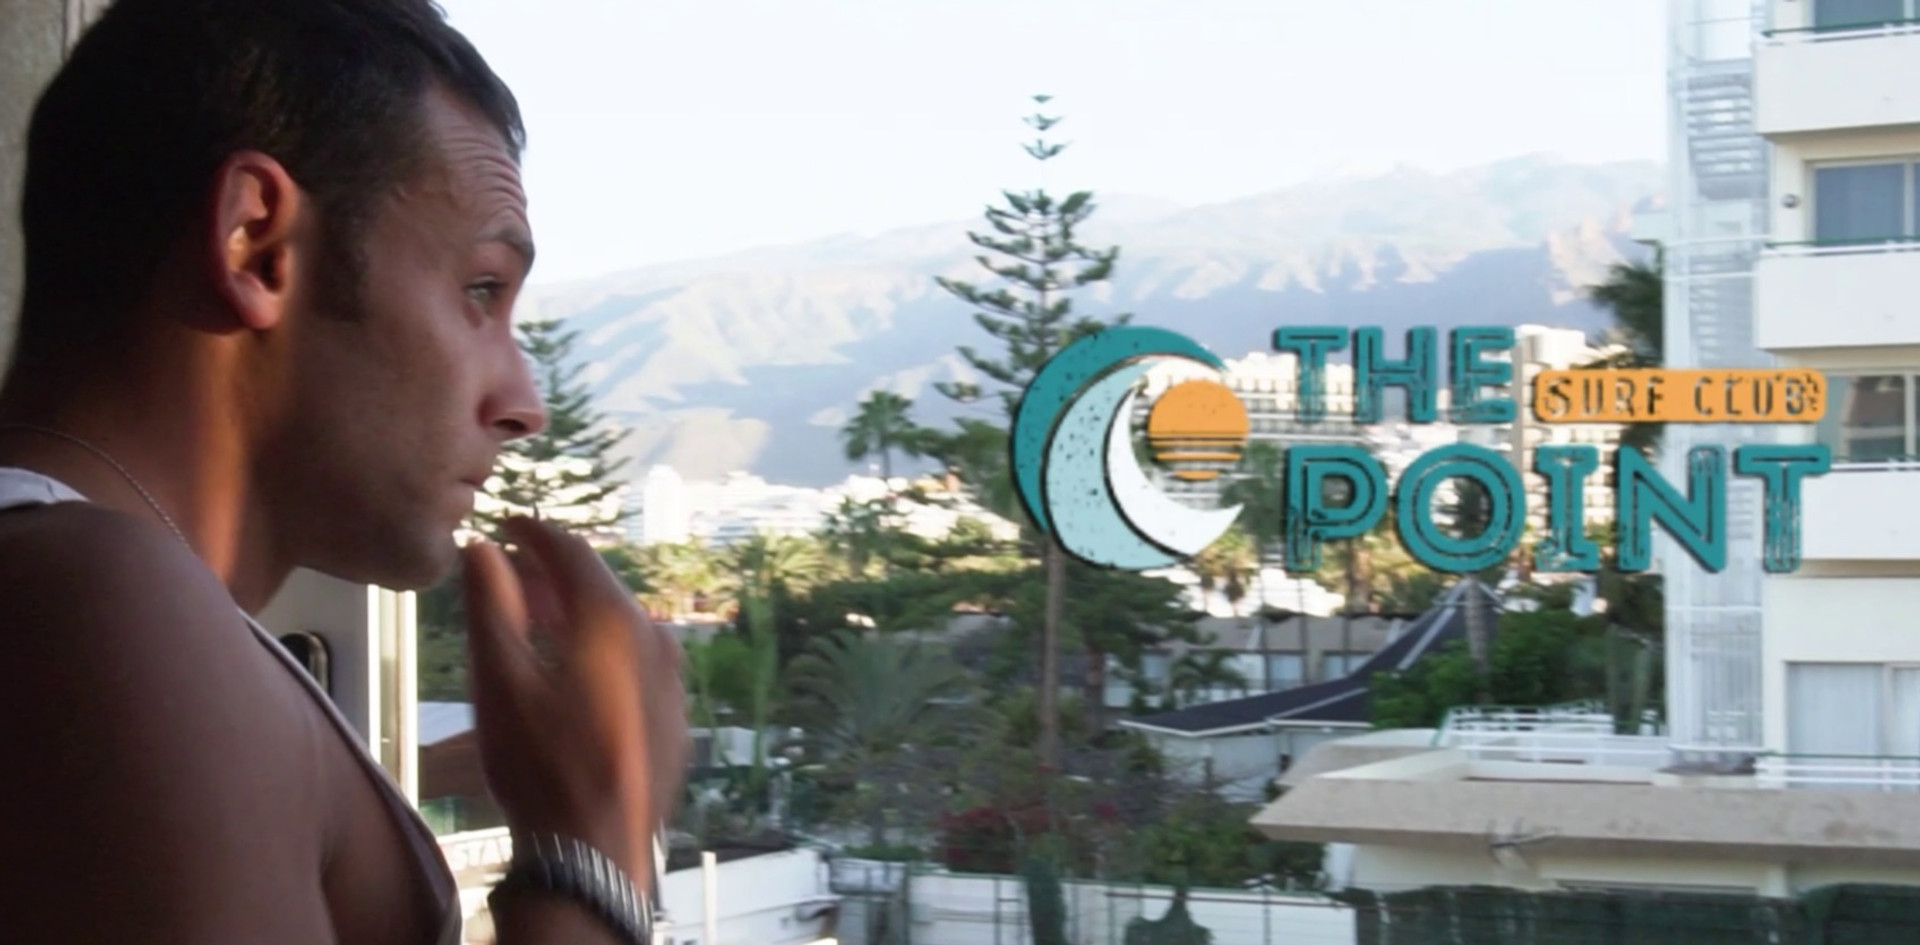 The Point Surf Club - Promotional Video